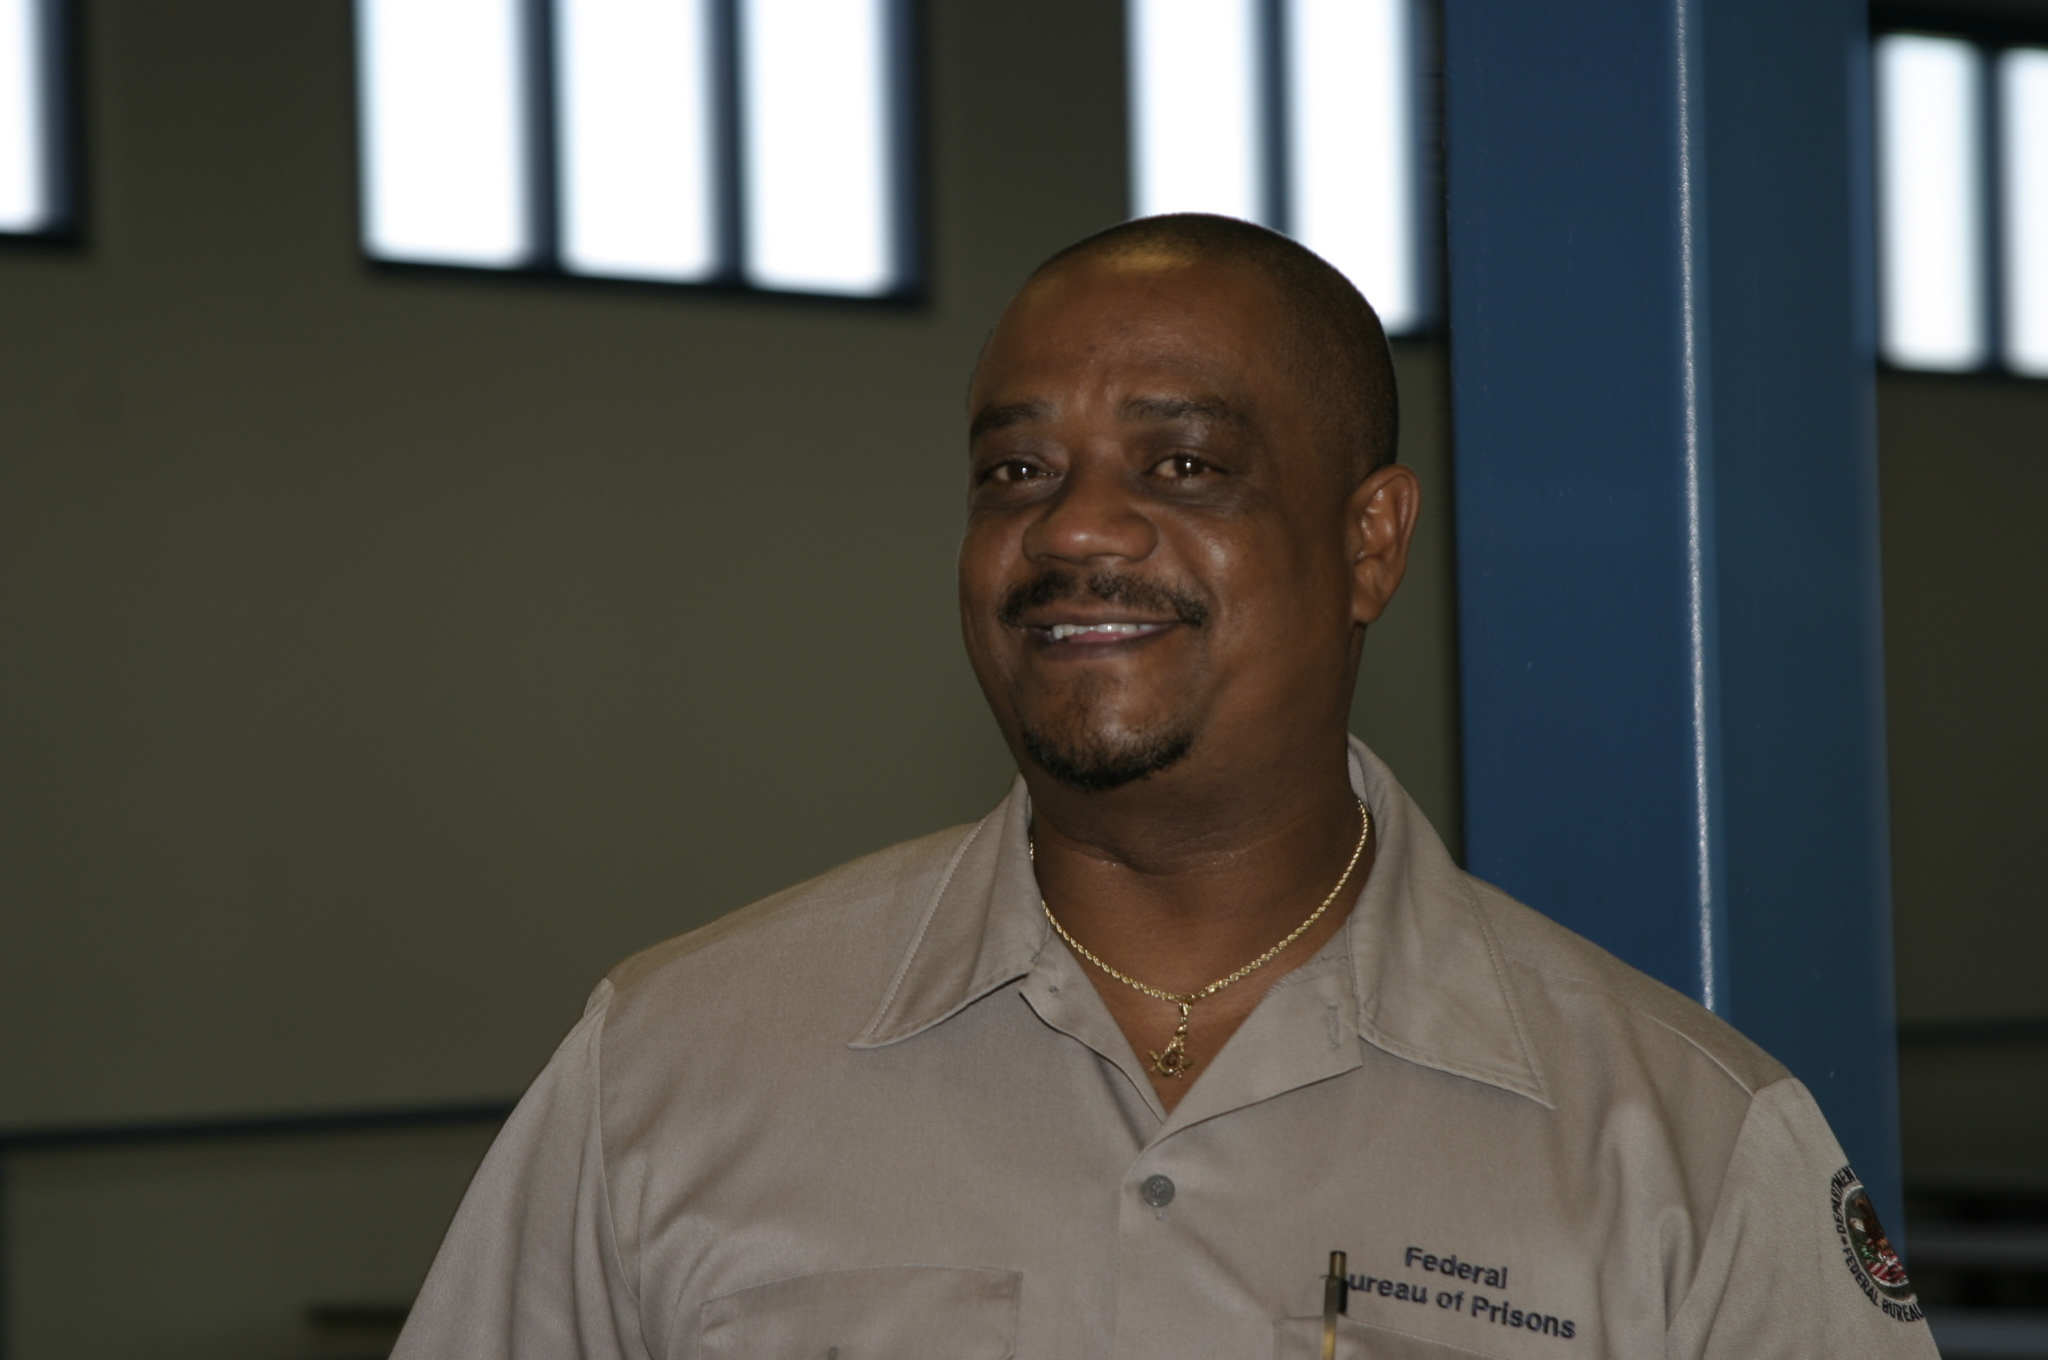 Supervisor Michael Clifton Baskett | United States Department of Justice - Federal Bureau of Prisons, U.S. Government